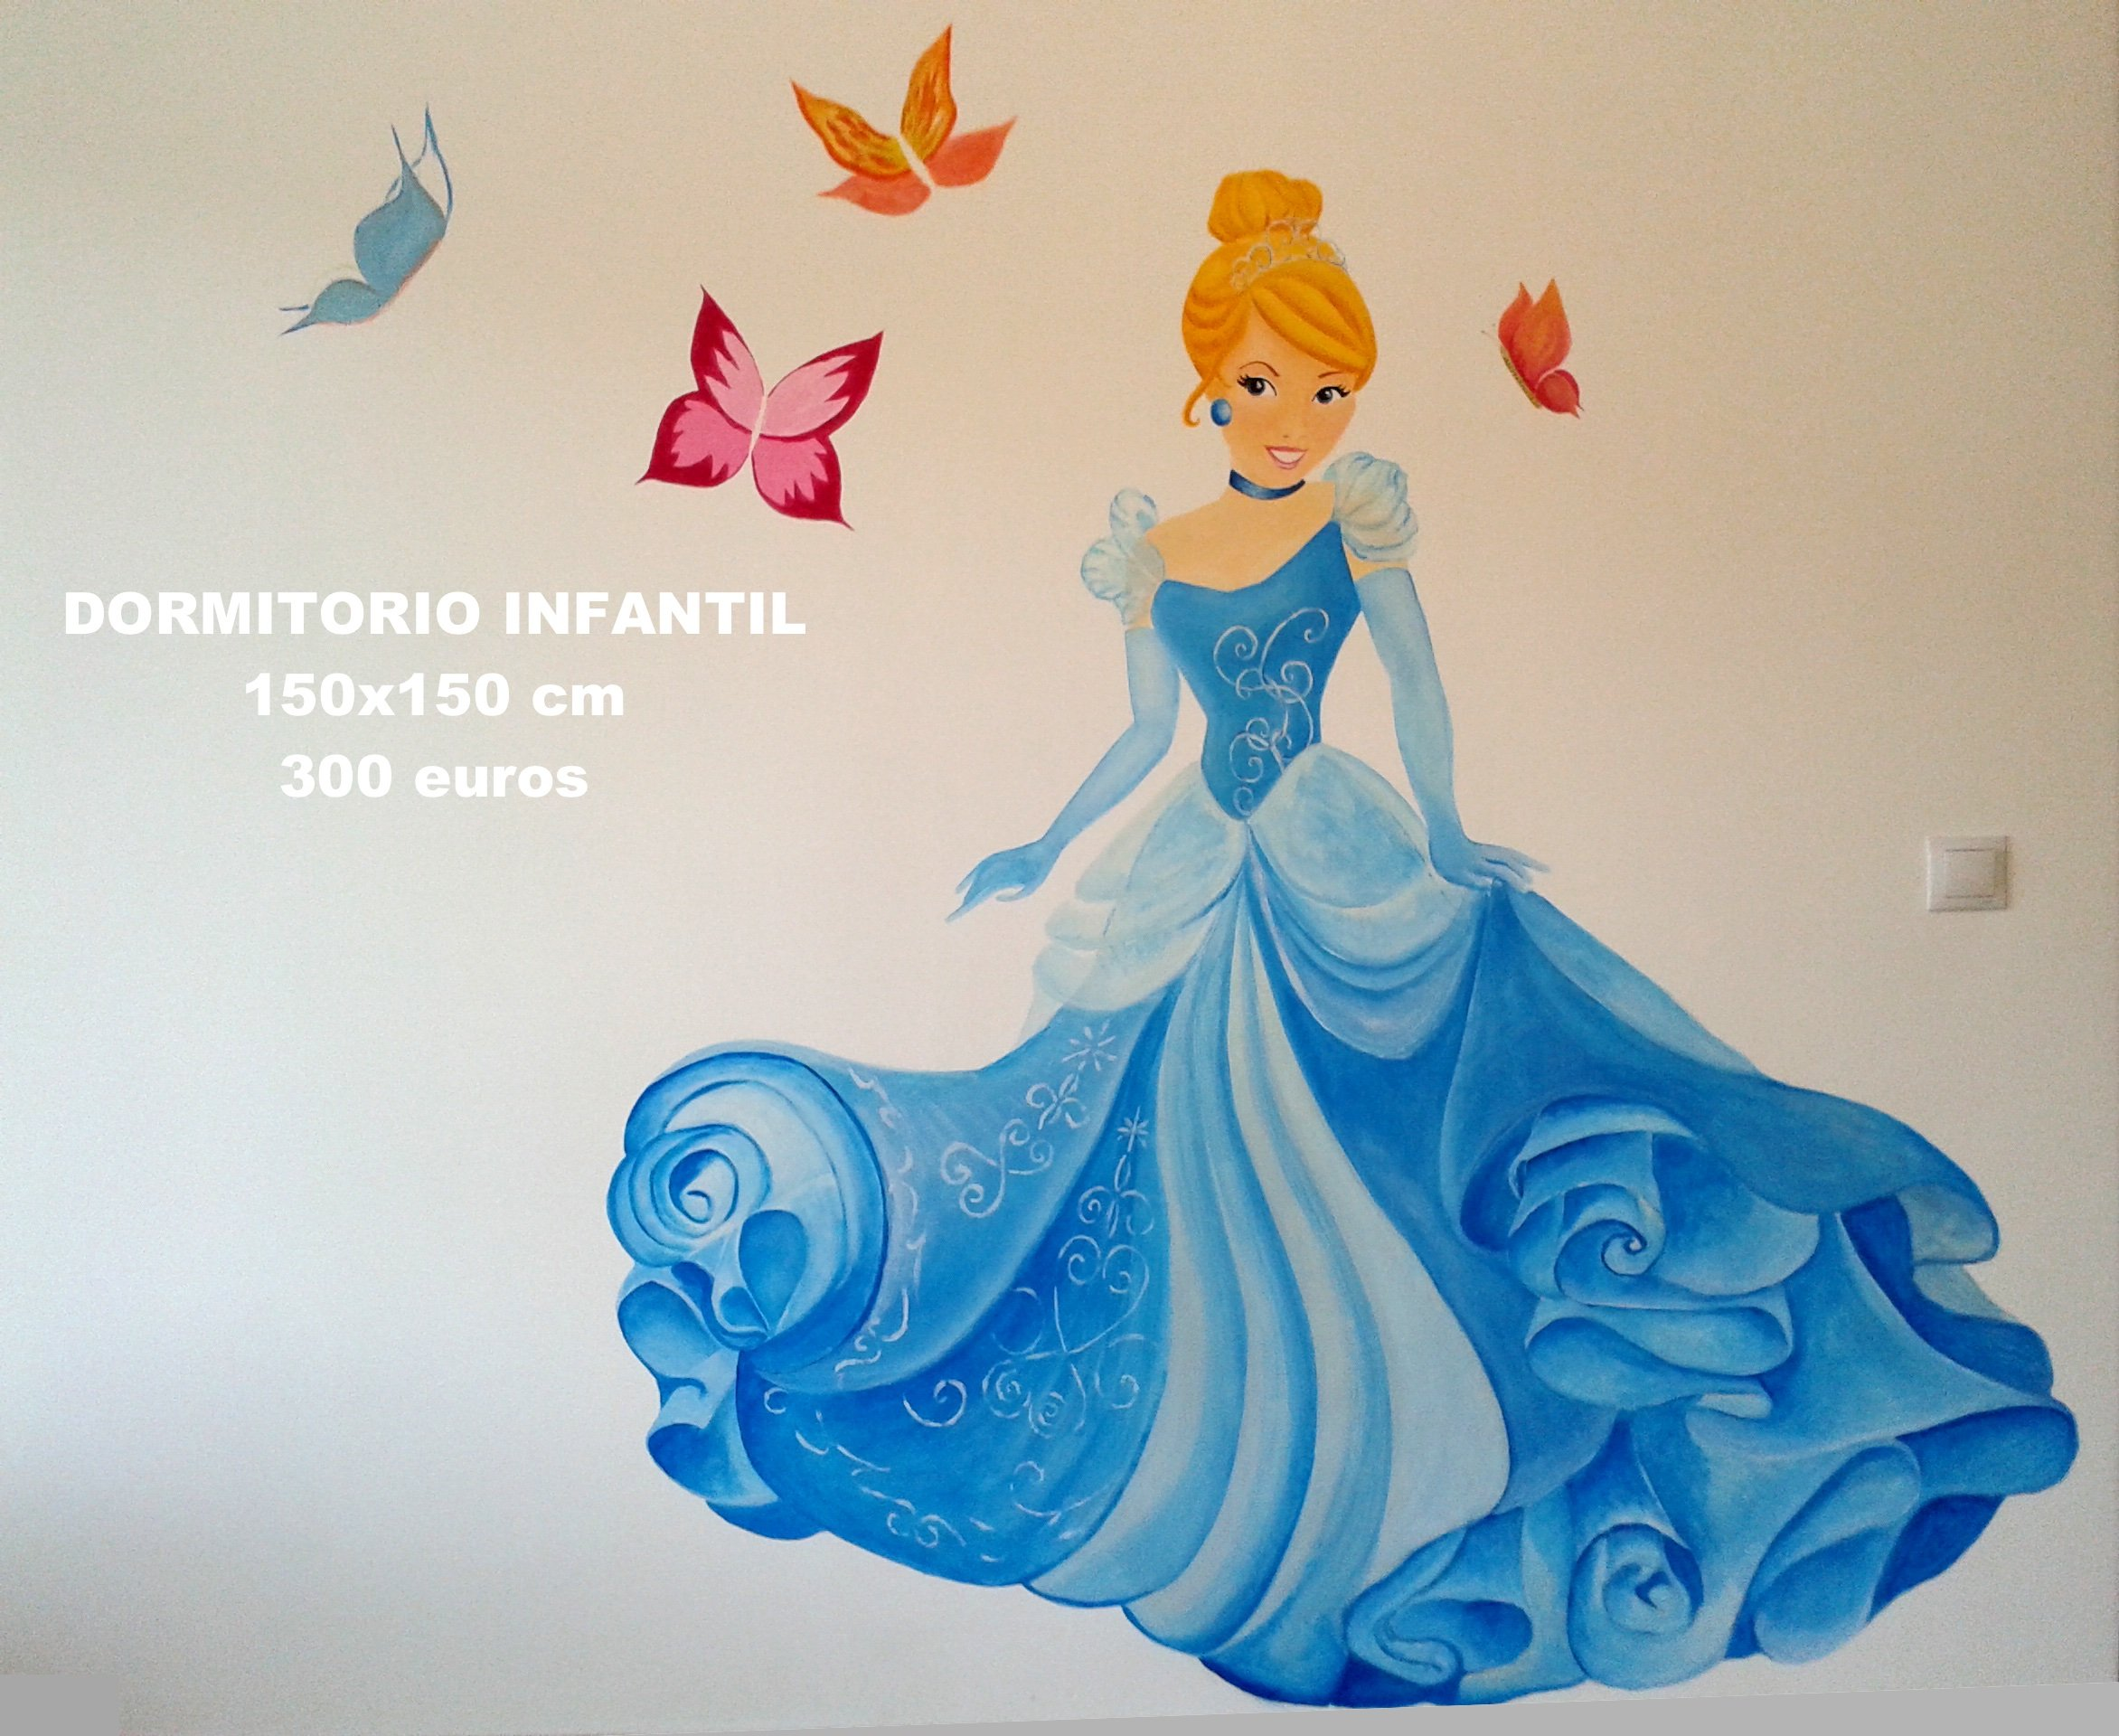 Pintura mural decorativa Dormitorio guardería